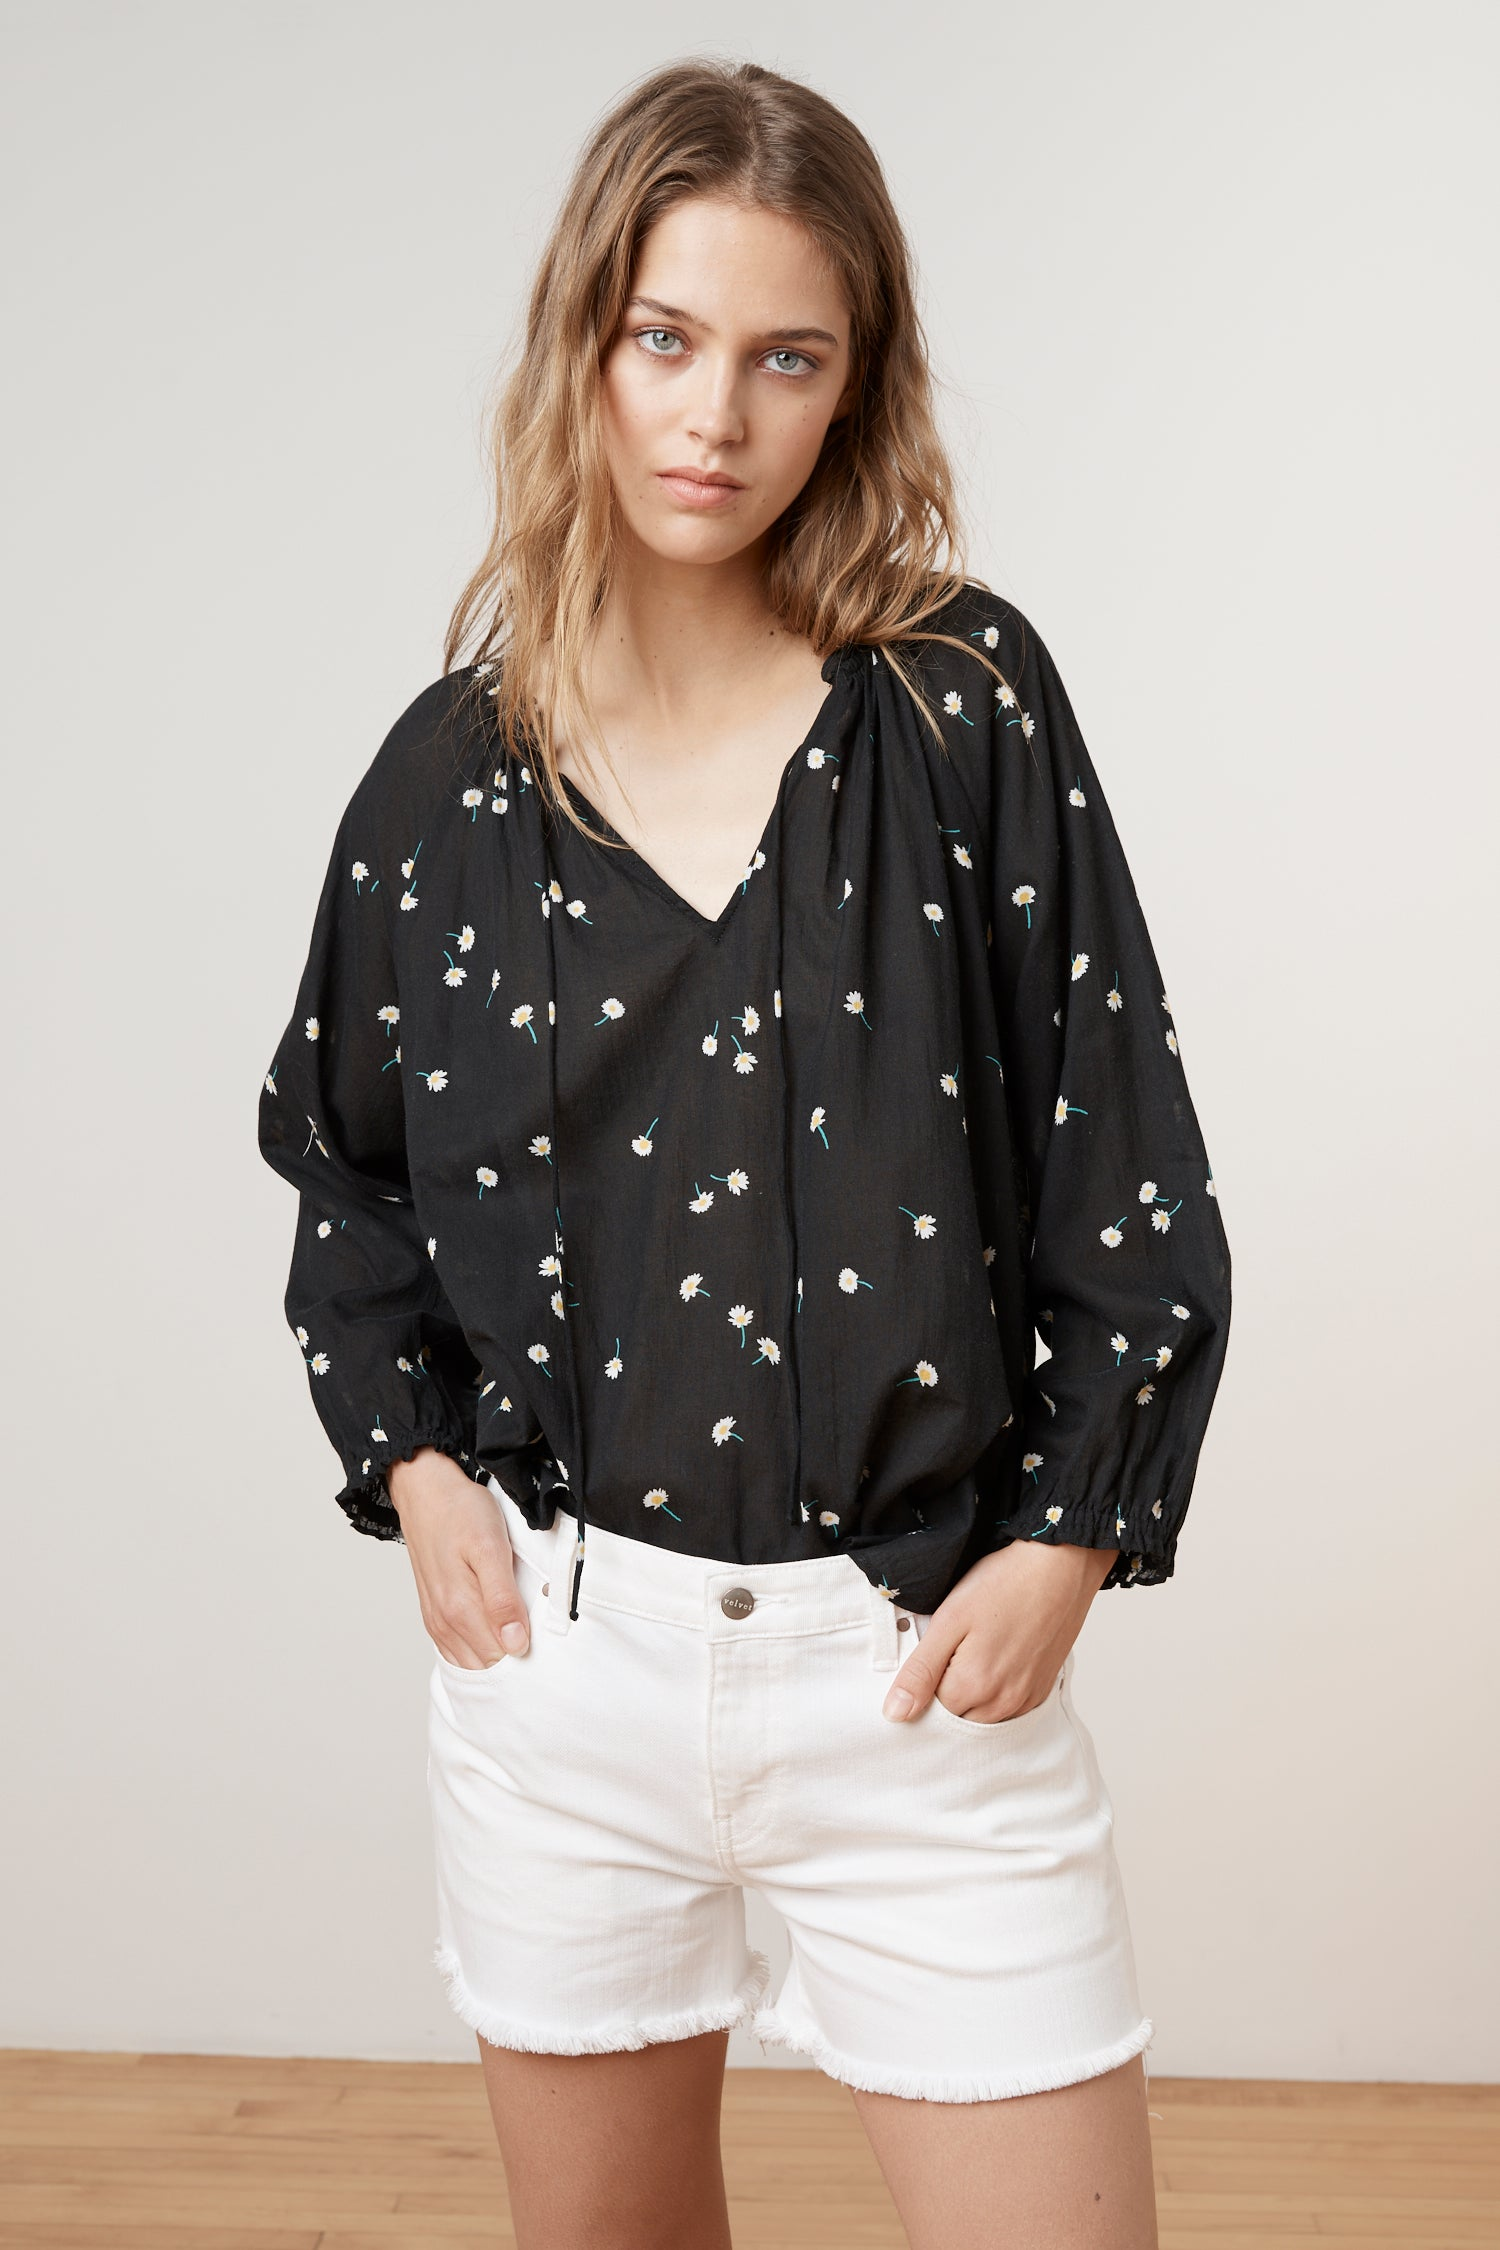 FREYA SHEER PRINTED GAUZE PEASANT TOP IN SHASTA